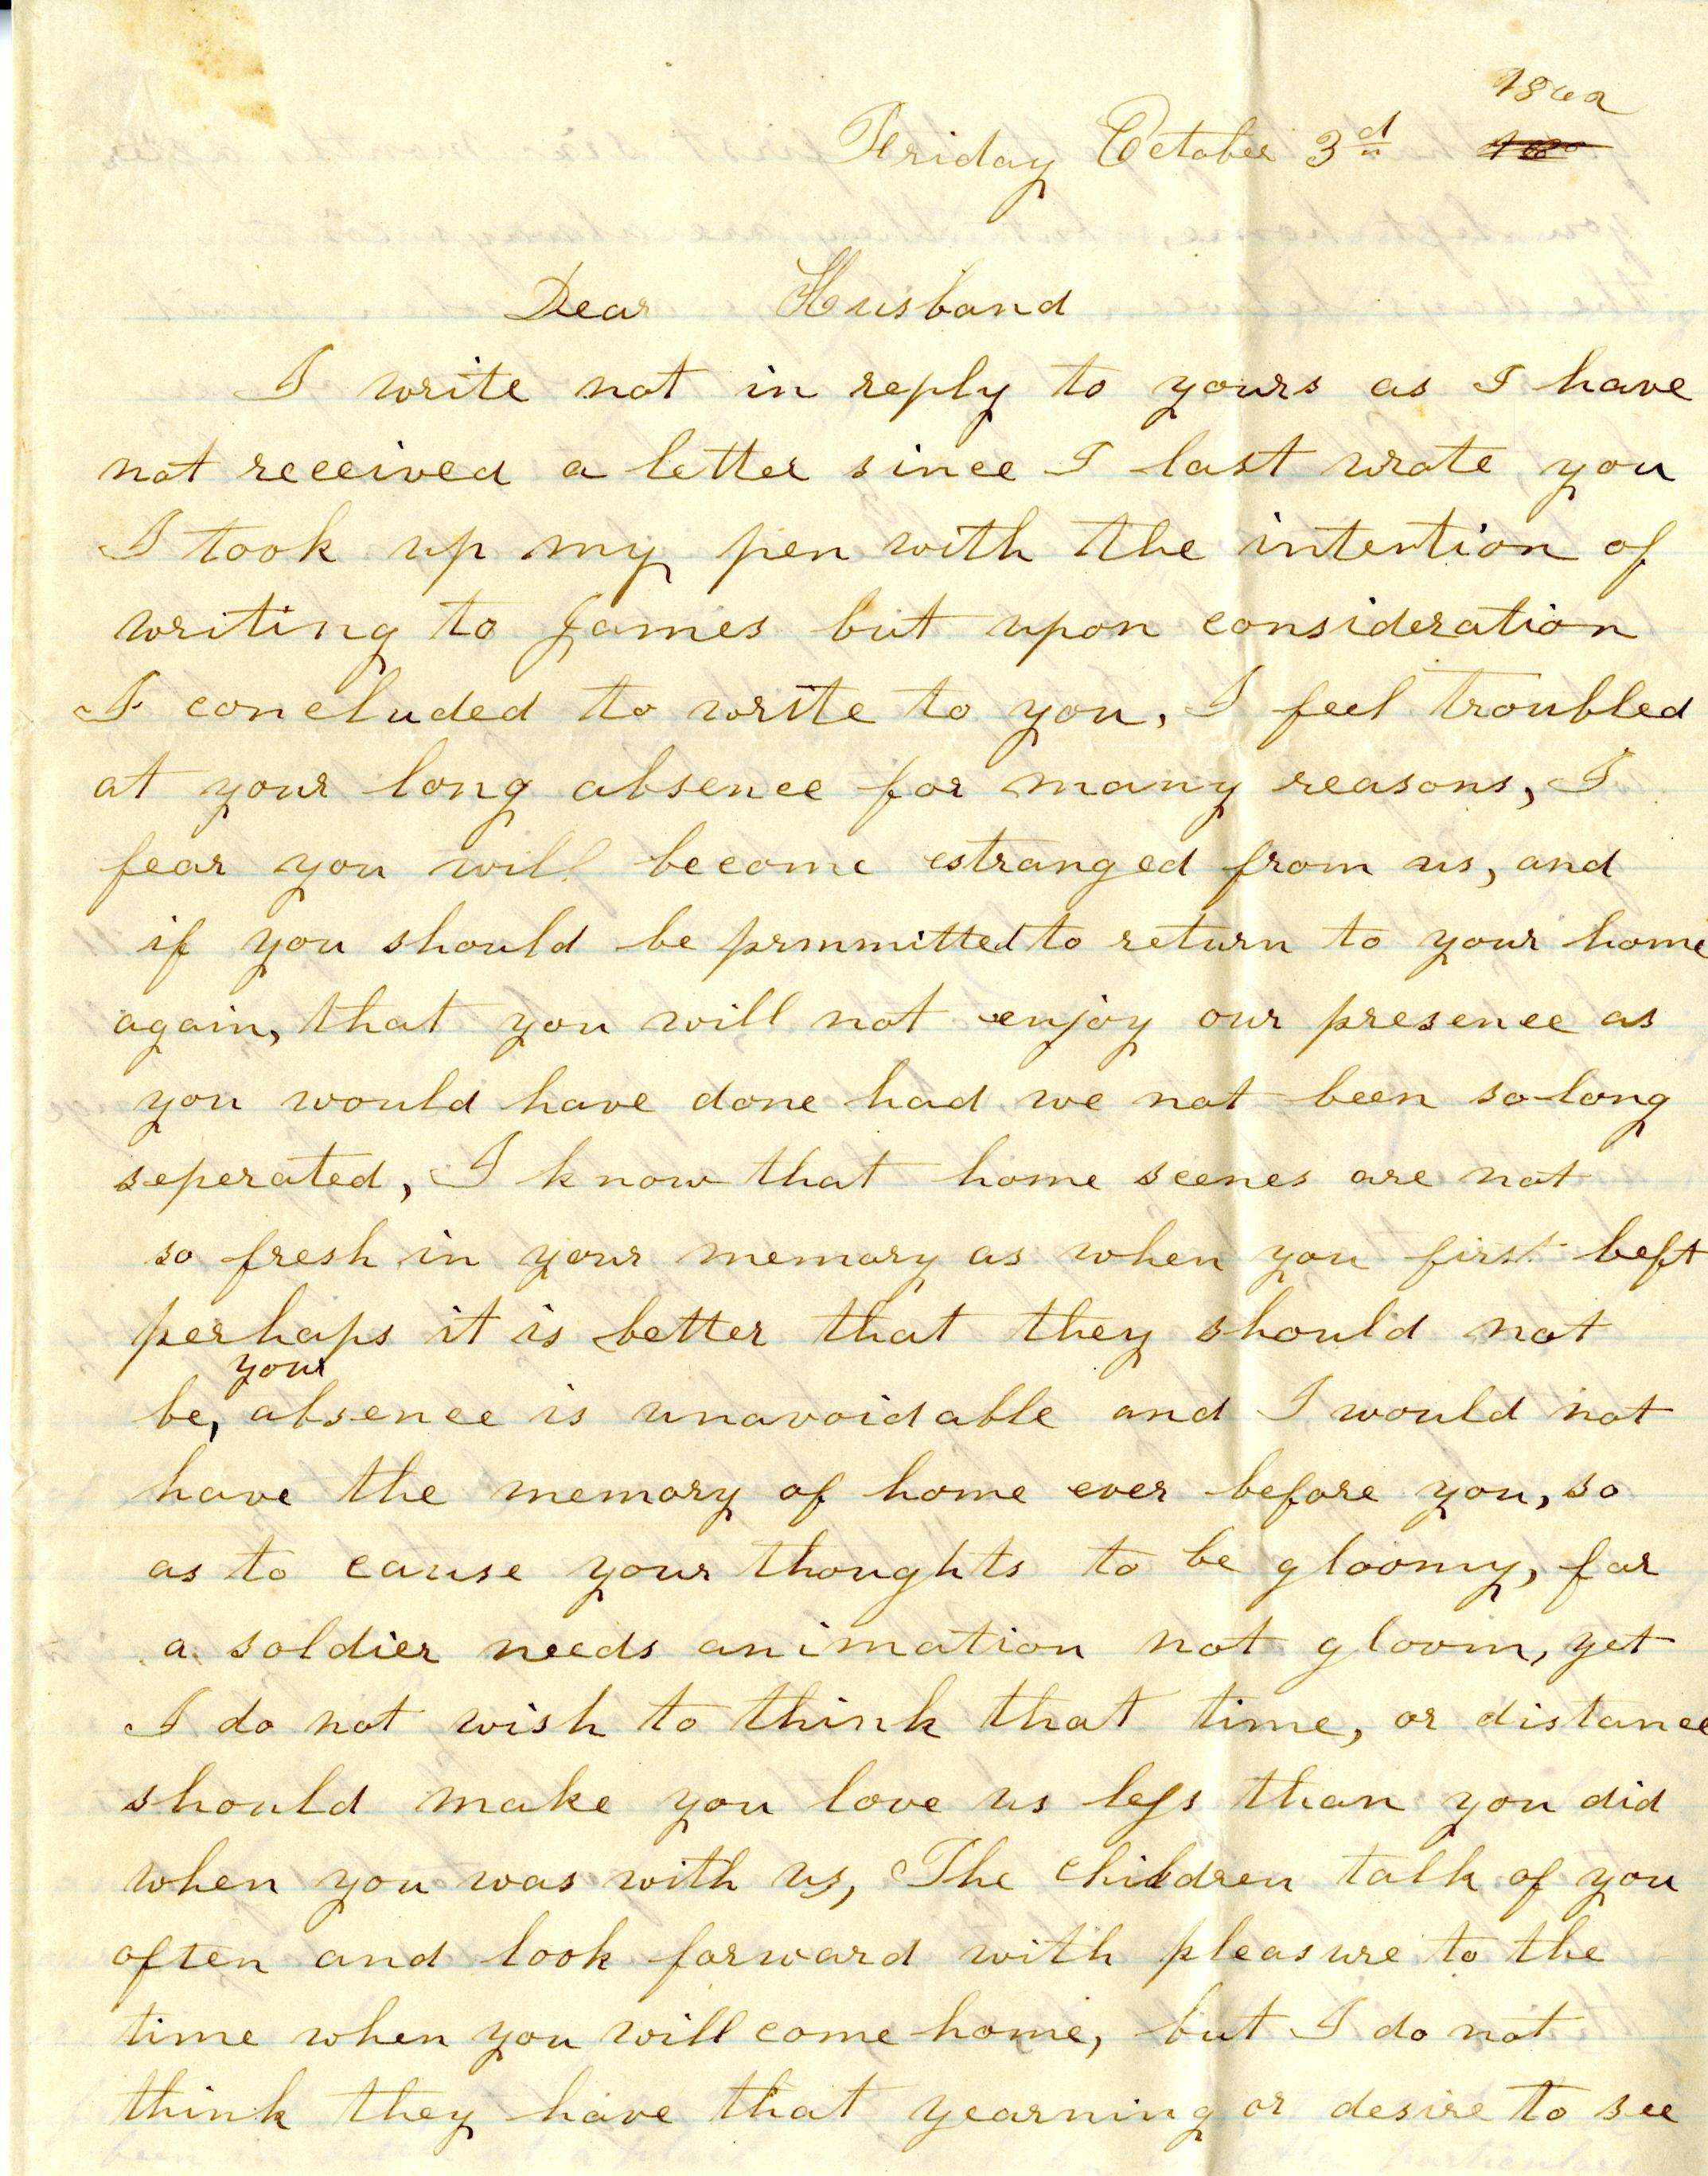 A Civil War Era Letter Written By Southern Illinois Woman To Her Husband While He Was Serving In The